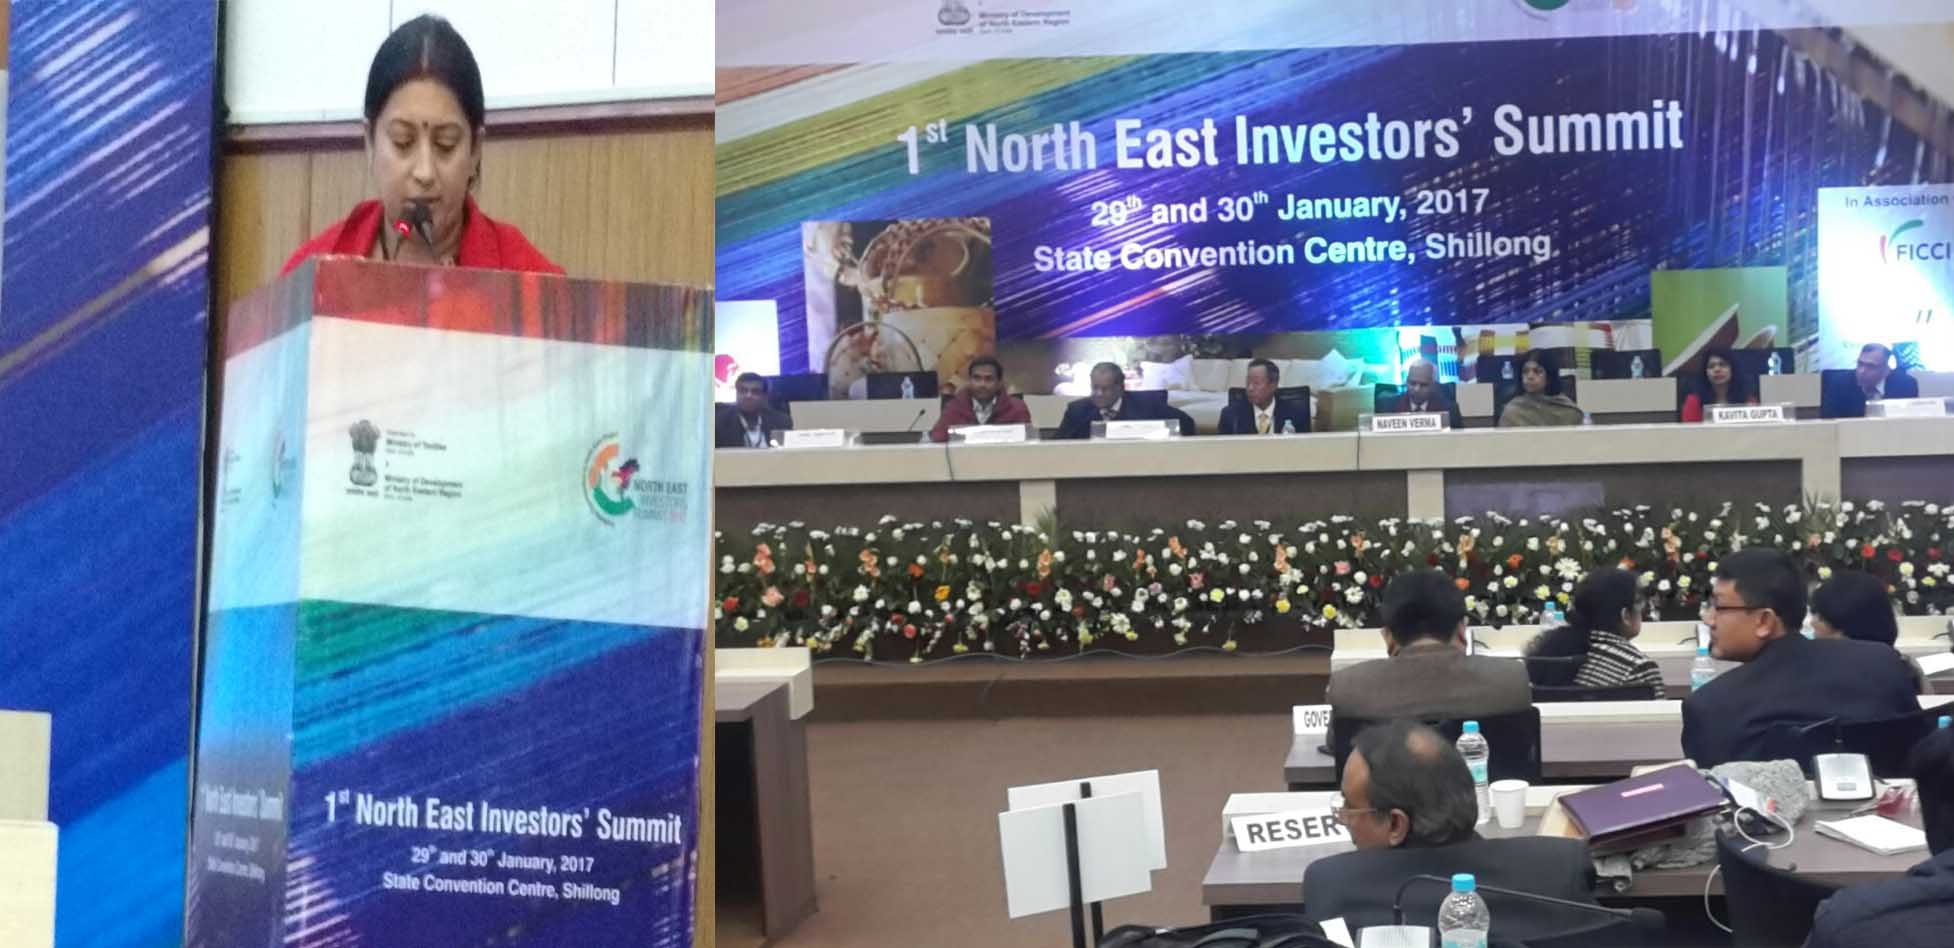 Smt. Smriti Zubin Irani, Hon'ble Union Minister of Textiles, Govt. of India deliberating her key note address at the 1st North East Investors' Summit held on 29-30 January at Shillong